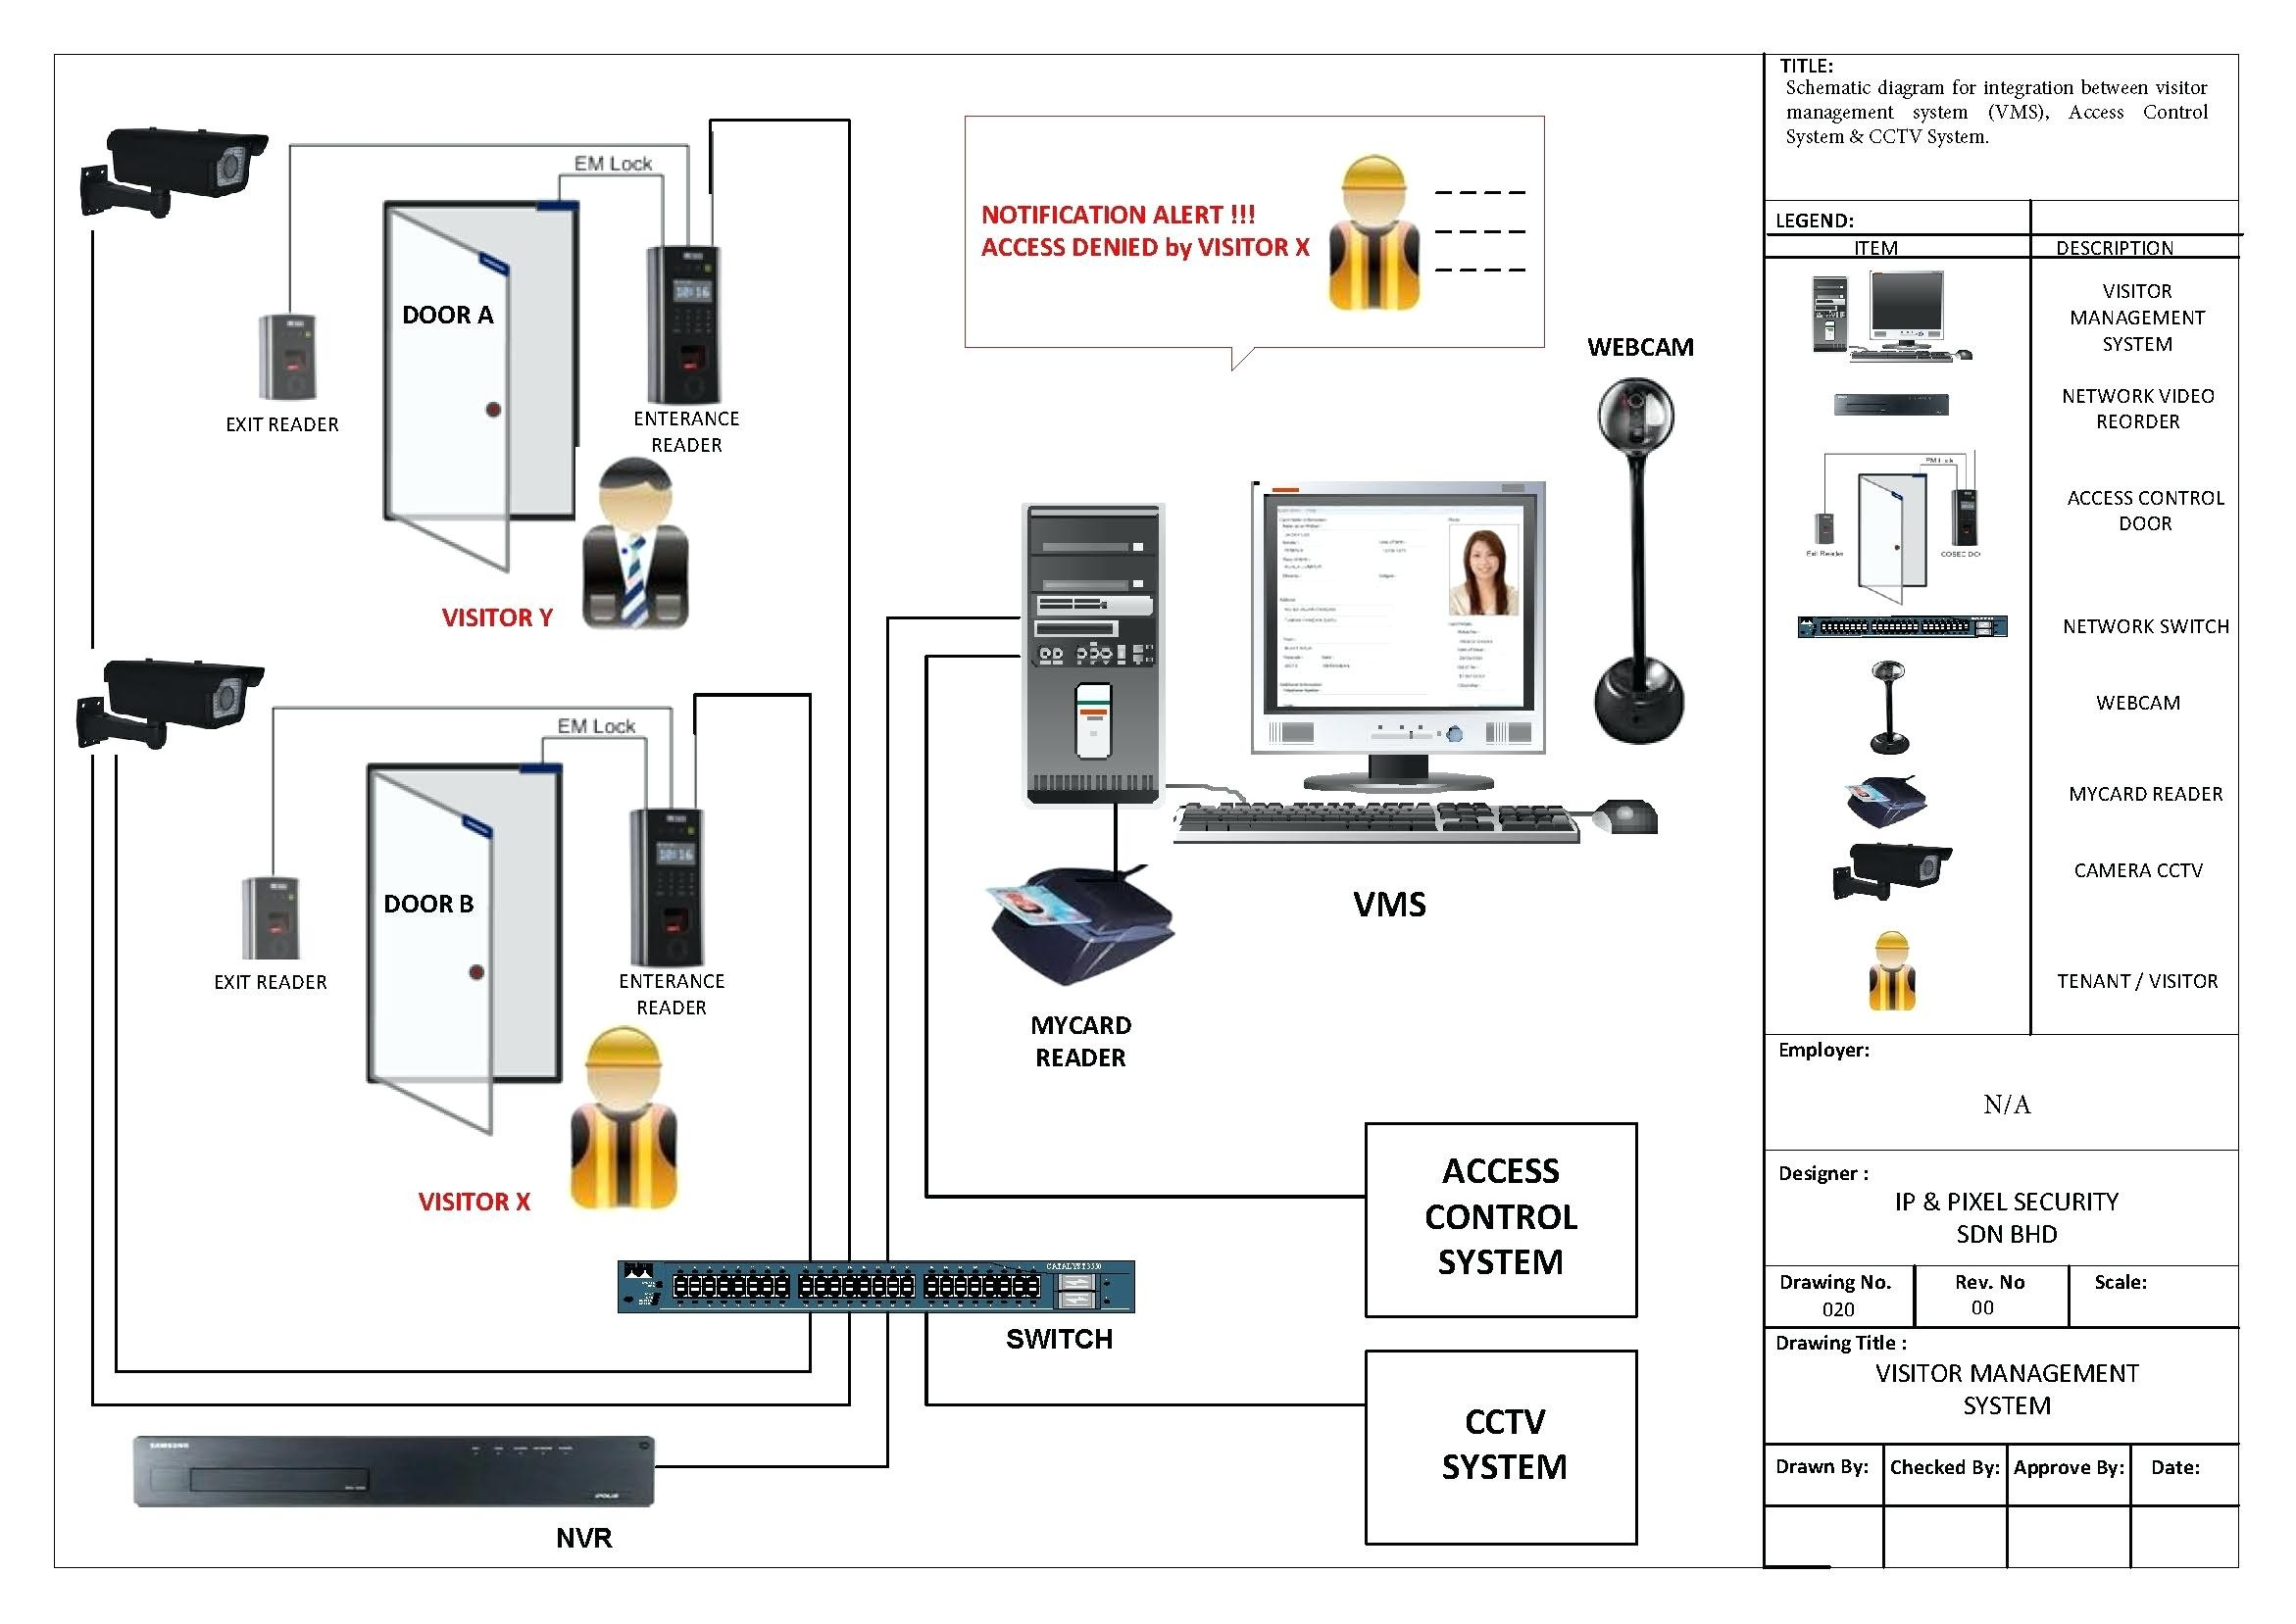 Security Camera Wiring Diagram Security Camera Wiring Diagram Rj11 Home Emergency Evacuation Plan Of Security Camera Wiring Diagram